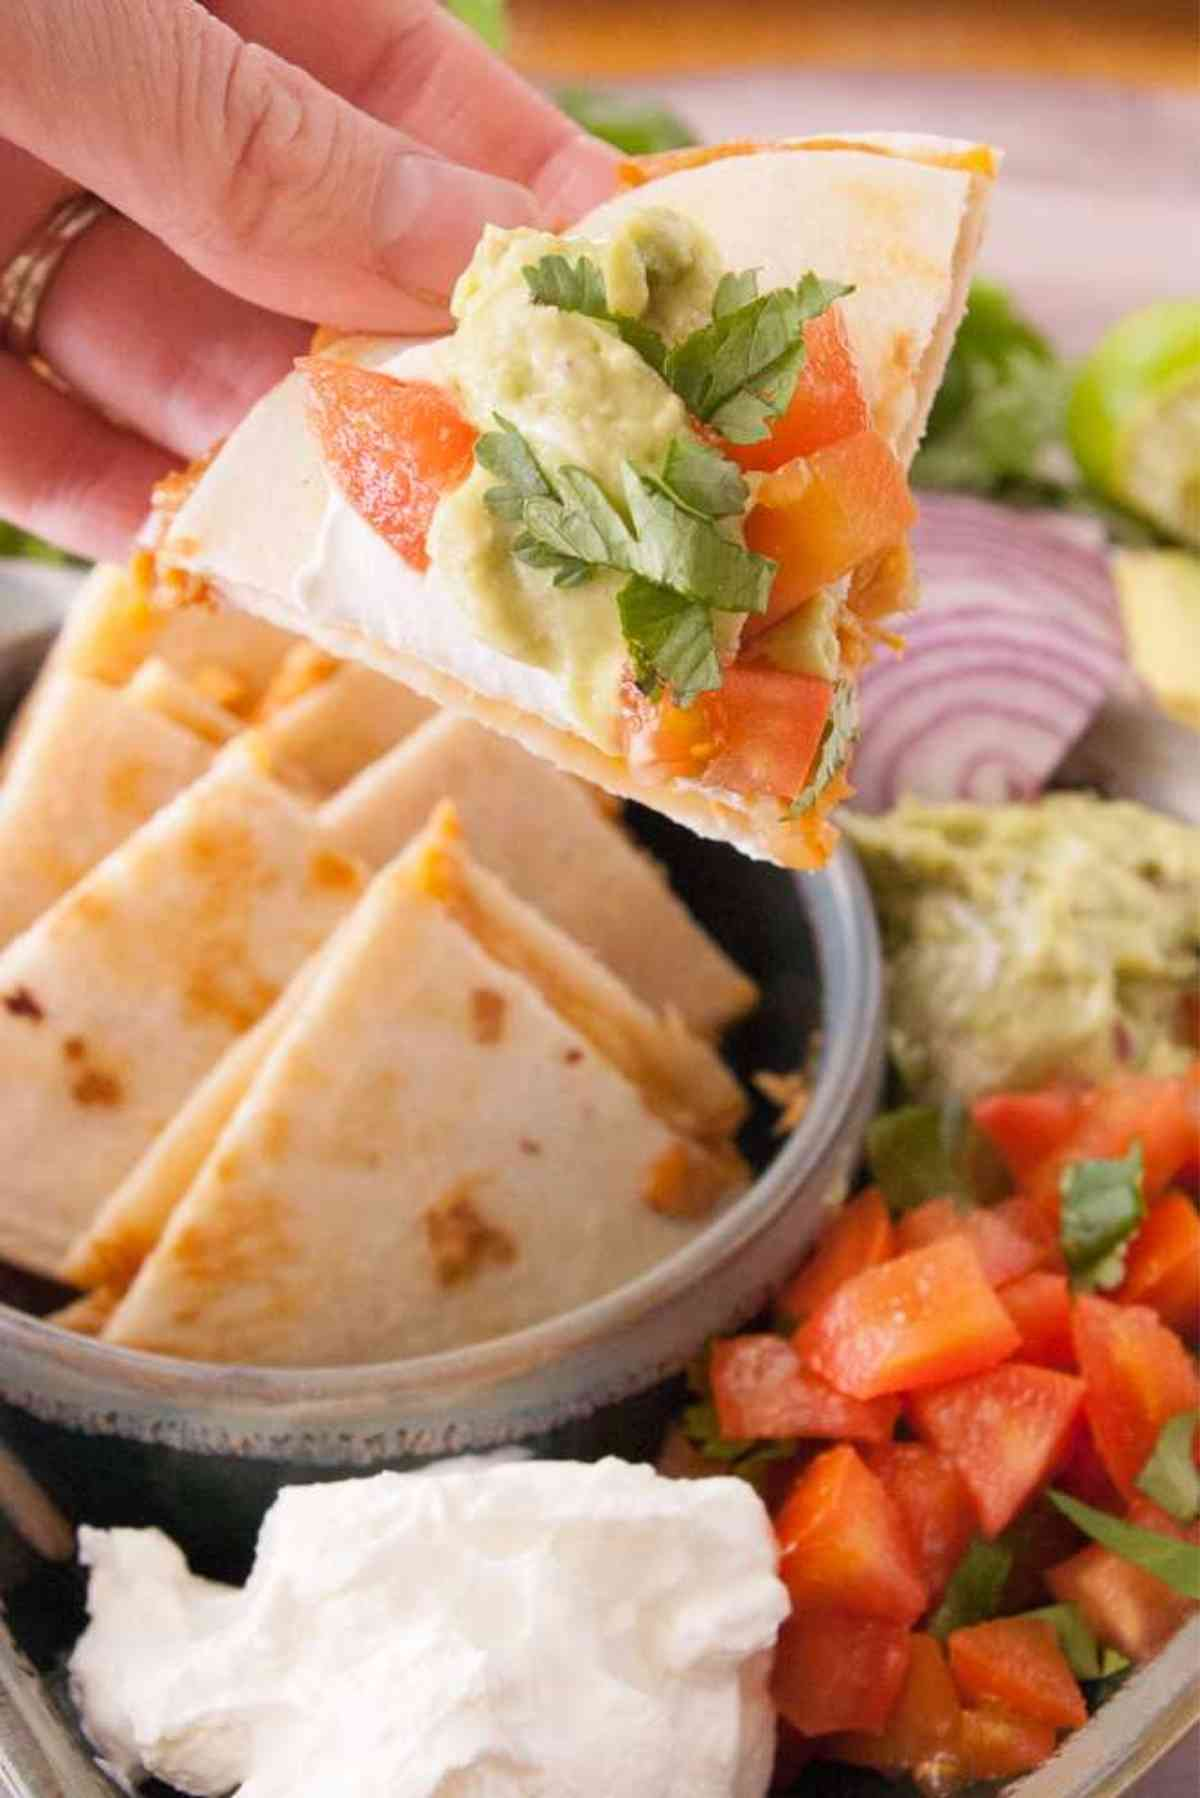 Buffalo Chicken Quesadillas topped with guac, sour cream, lettuce and tomatoes.